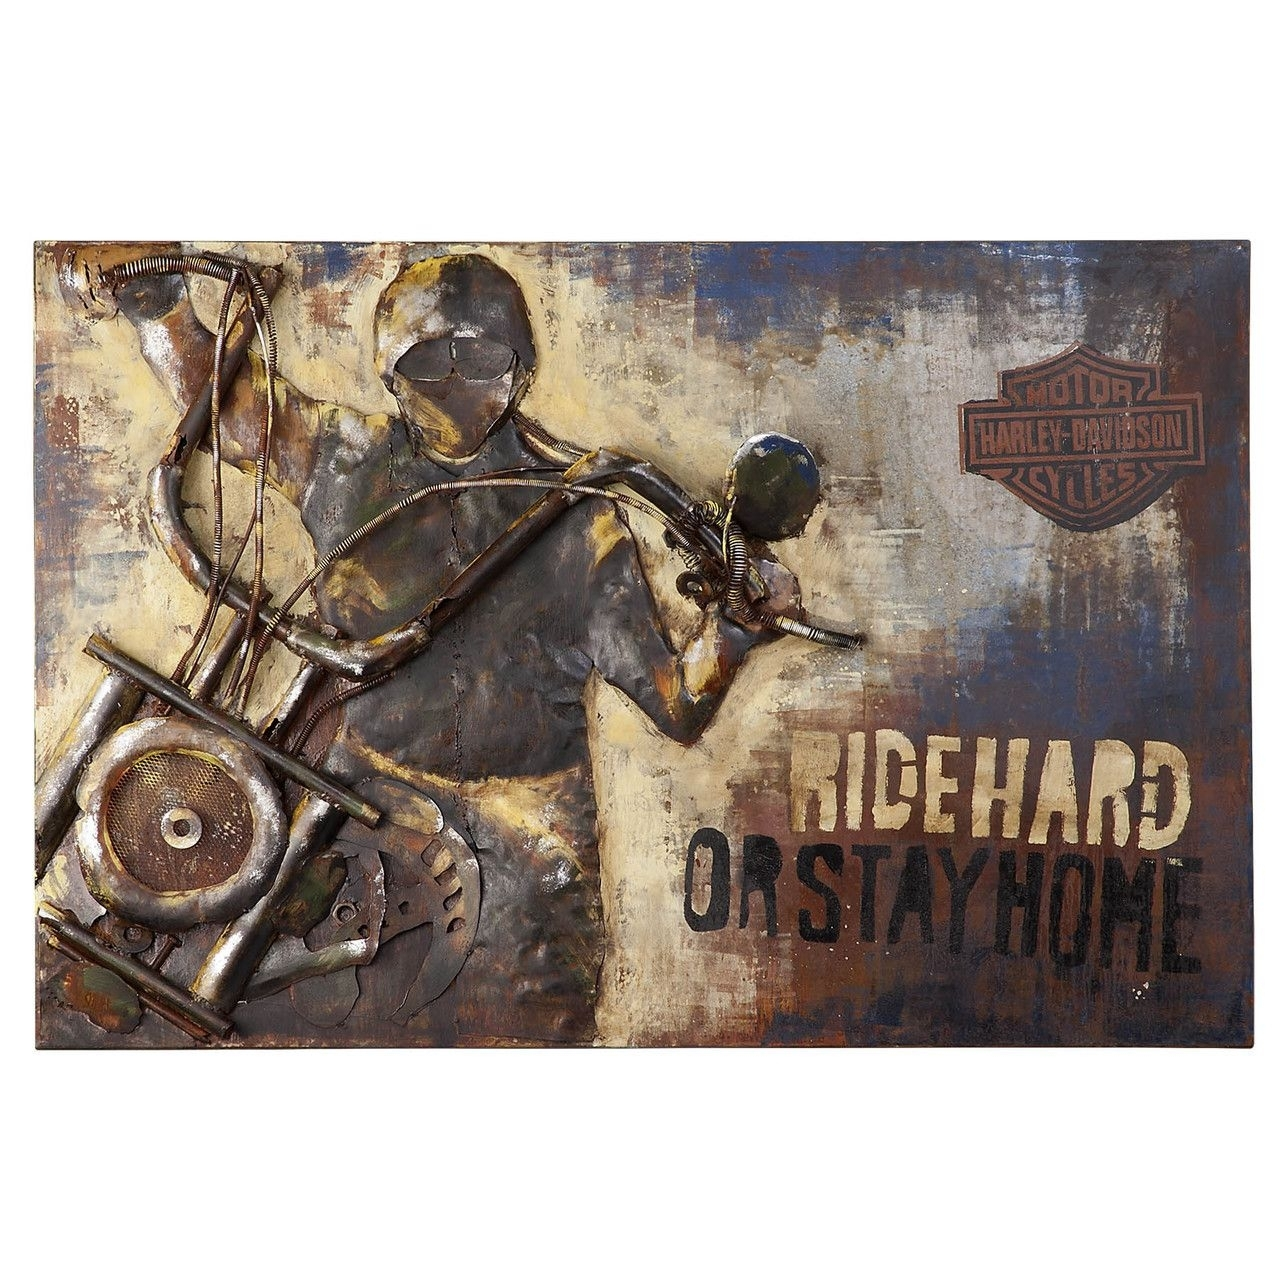 Harley Davidson Metal Wall Art Hdl 15508 | Harley Art | Pinterest In Most Recently Released Harley Davidson Wall Art (Gallery 6 of 20)